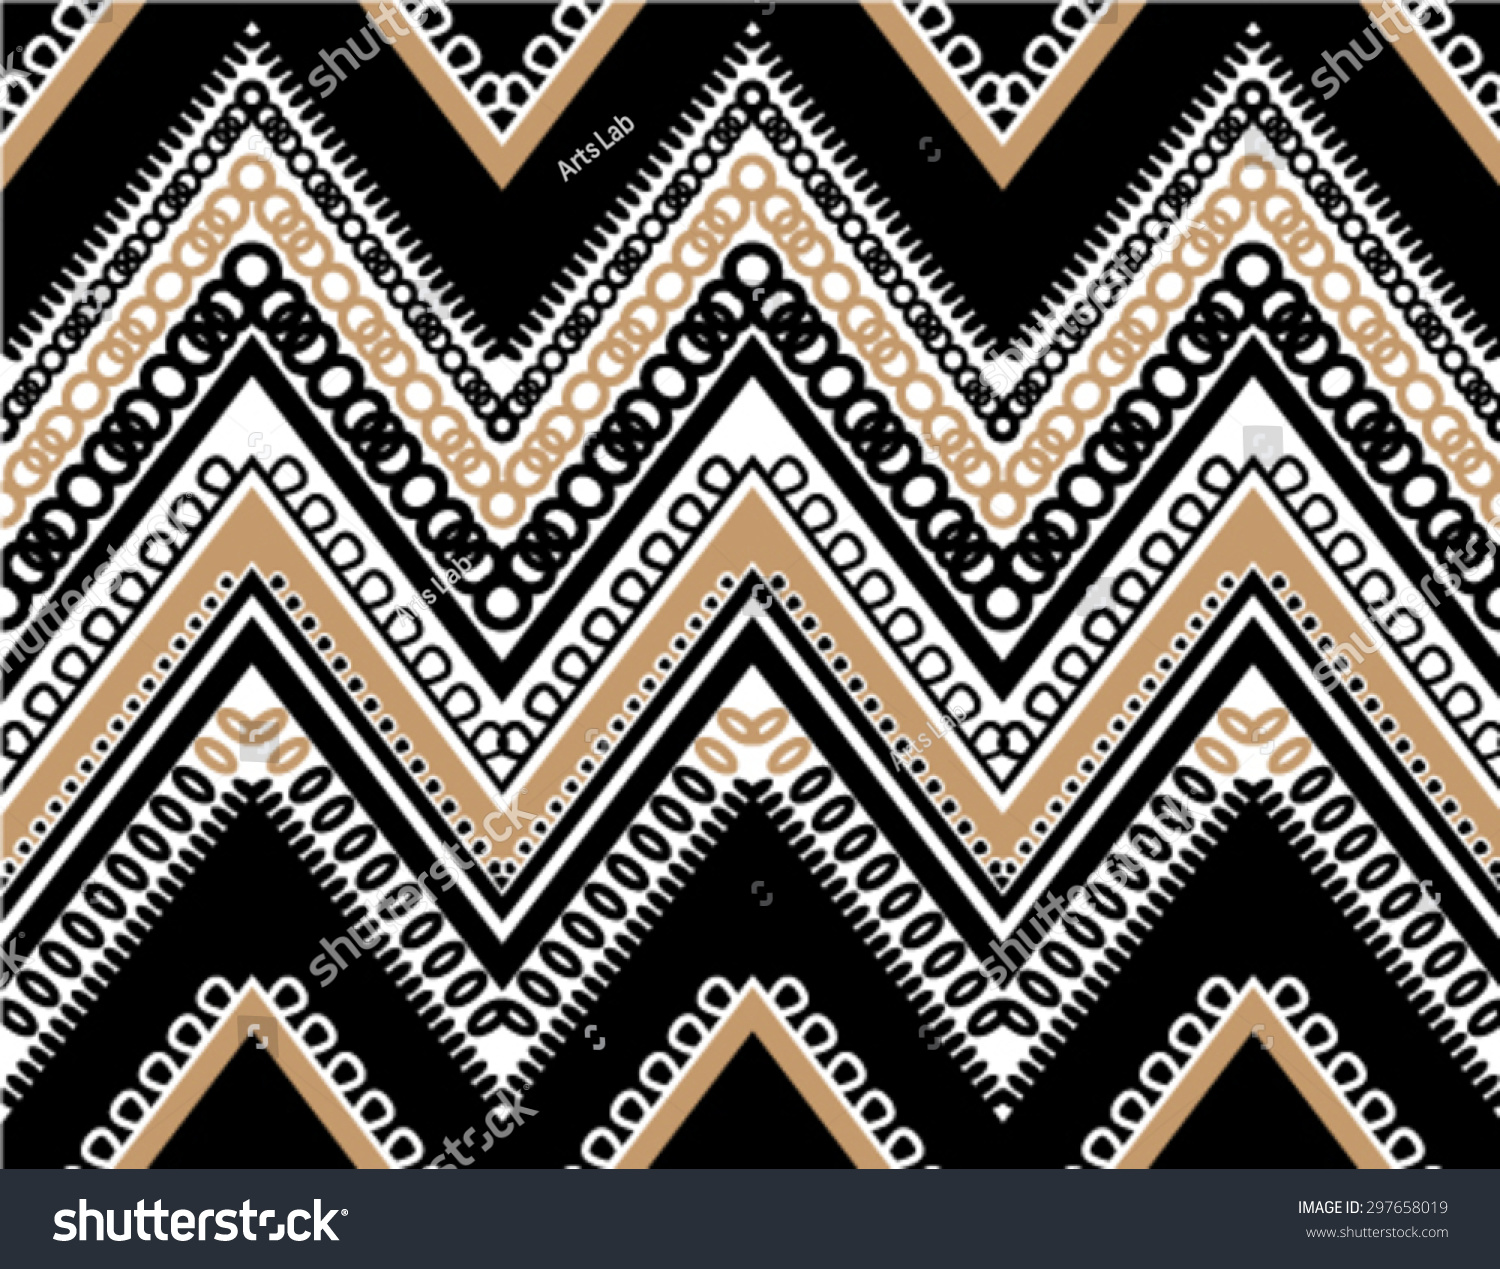 Black White Tan Textured ZigZag Chevron Seamless Pattern